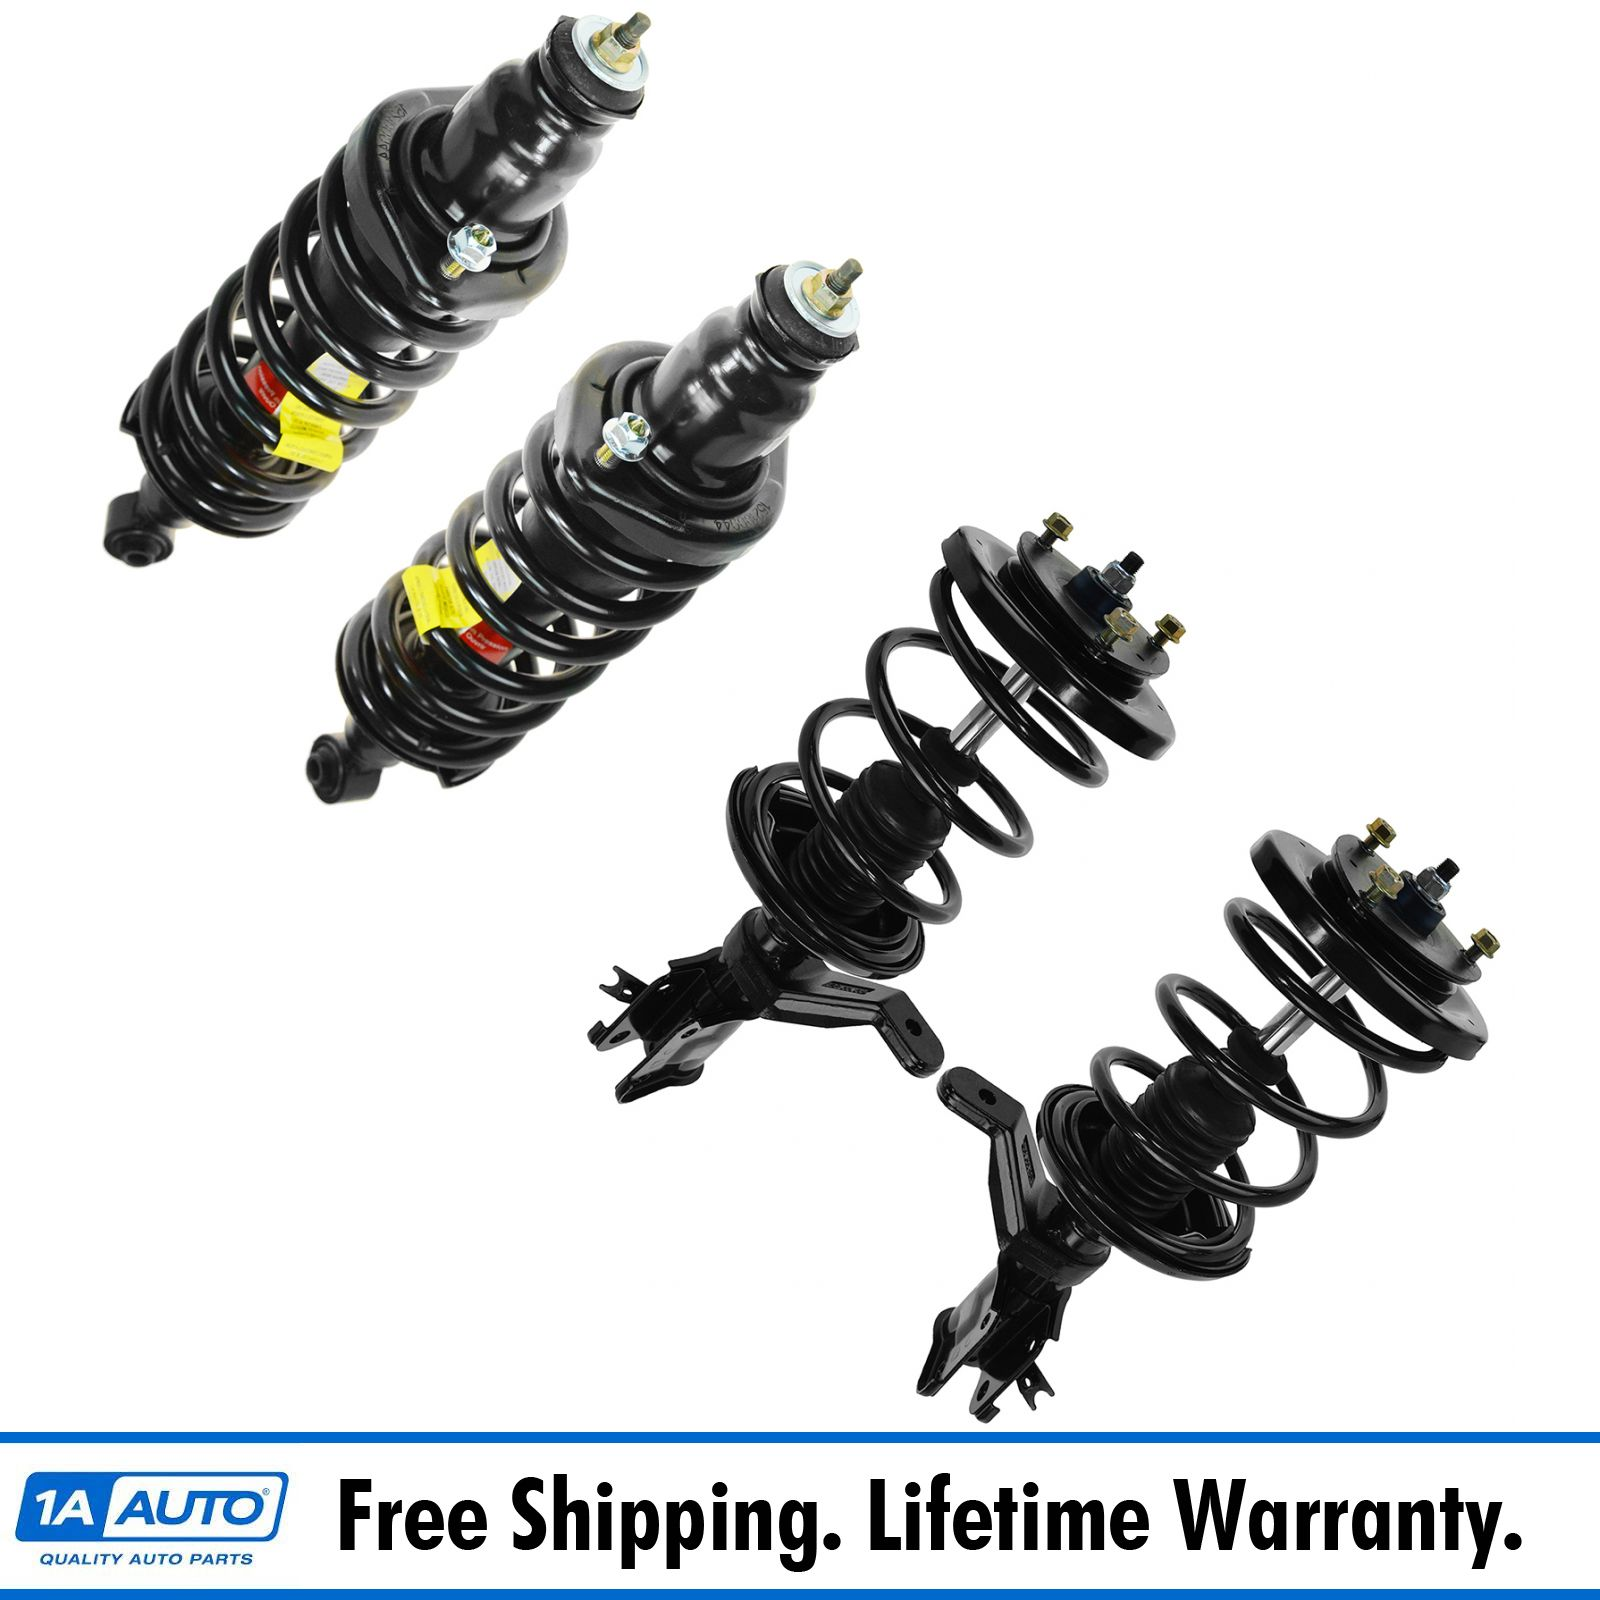 Monroe New Front /& Rear Strut Replacement Kit For Honda Civic 01-05